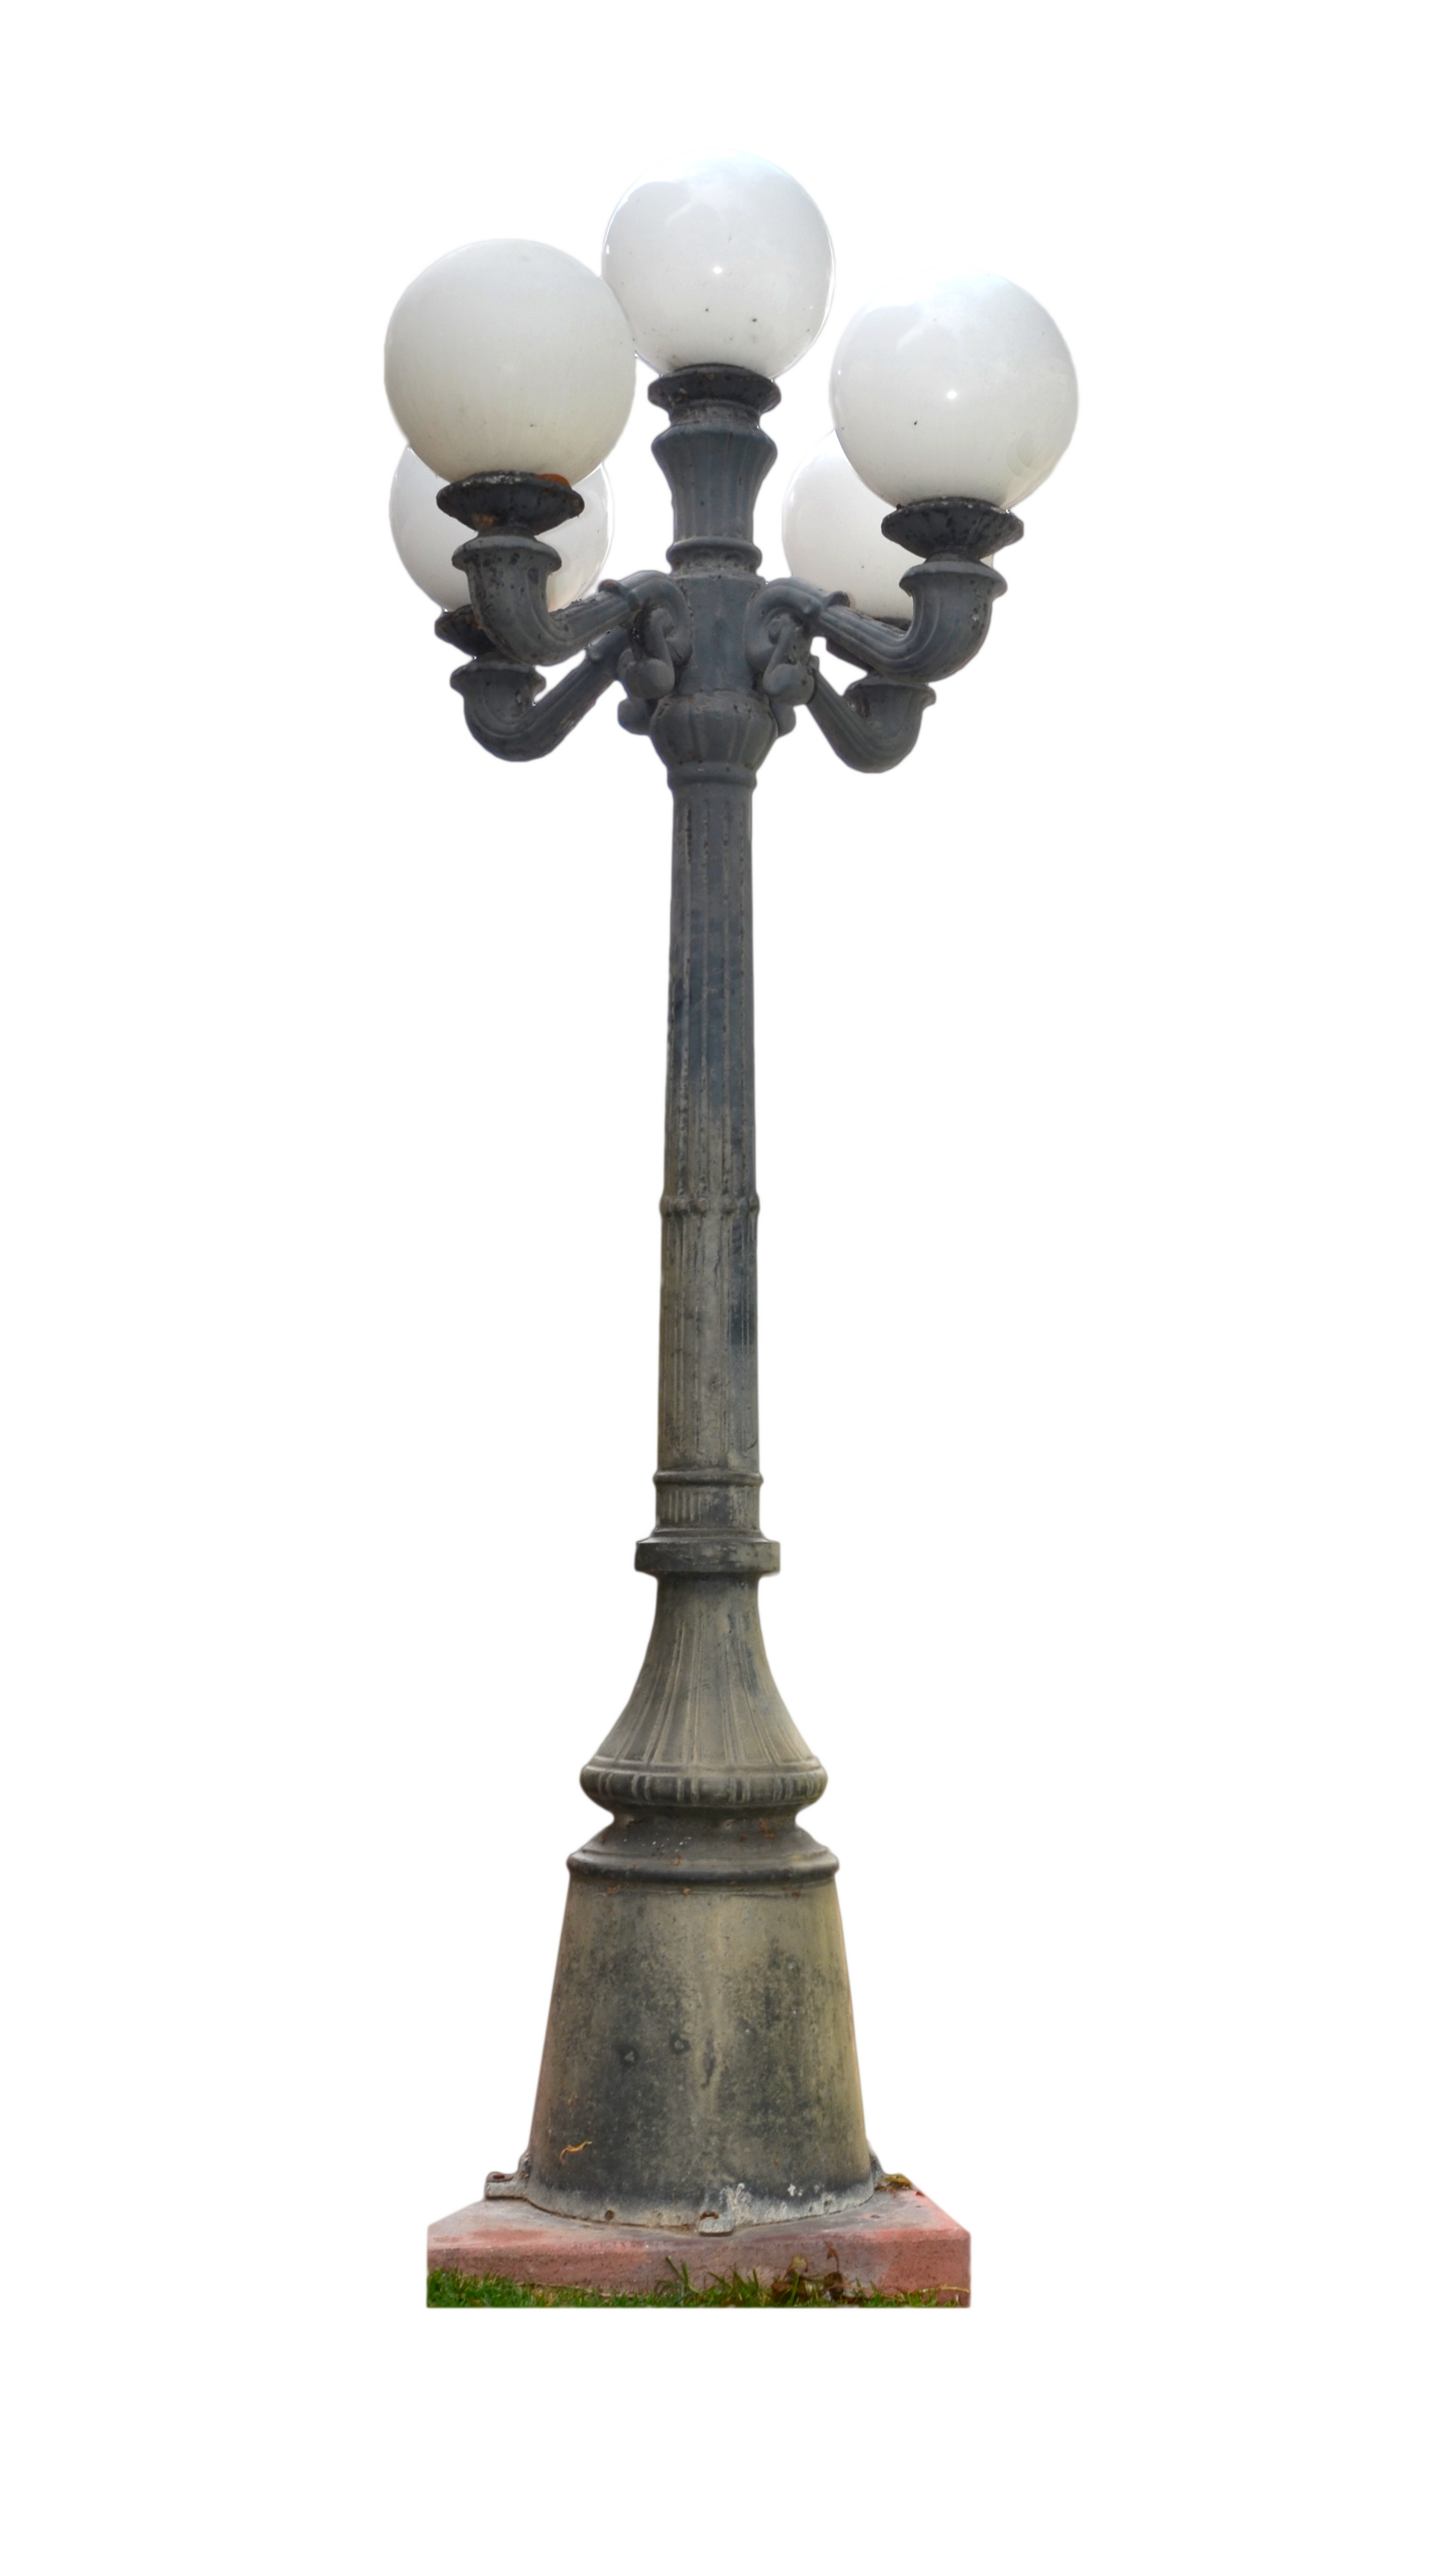 Street Light Free Cut Out PNG Images